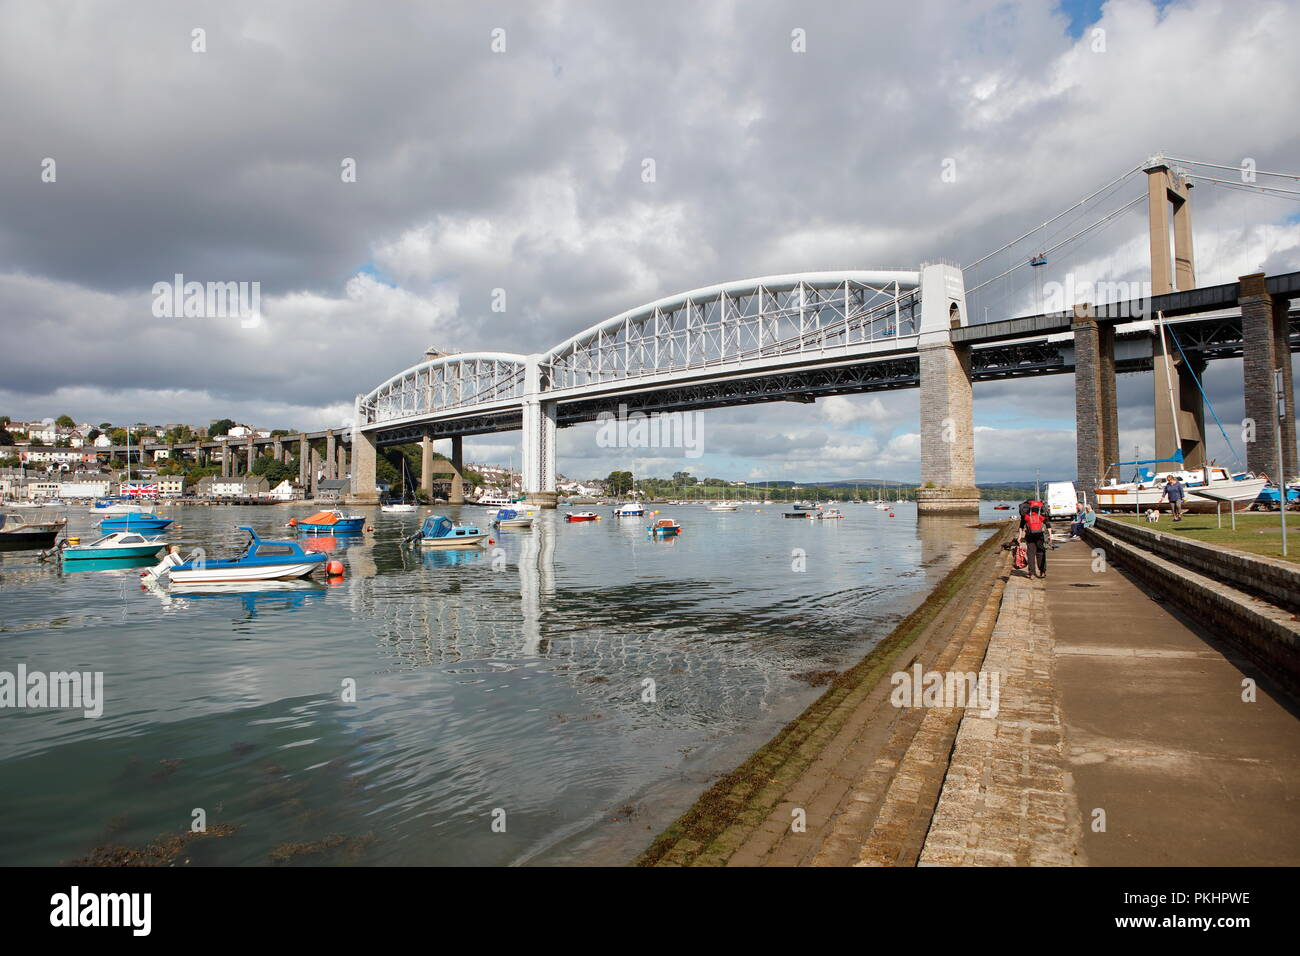 Plymouth, Devon, UK. 13th September, 2018. The Royal Albert and Tamar bridges spanning the River Tamar between Cornwall and Devon. The Royal Albert Br Stock Photo